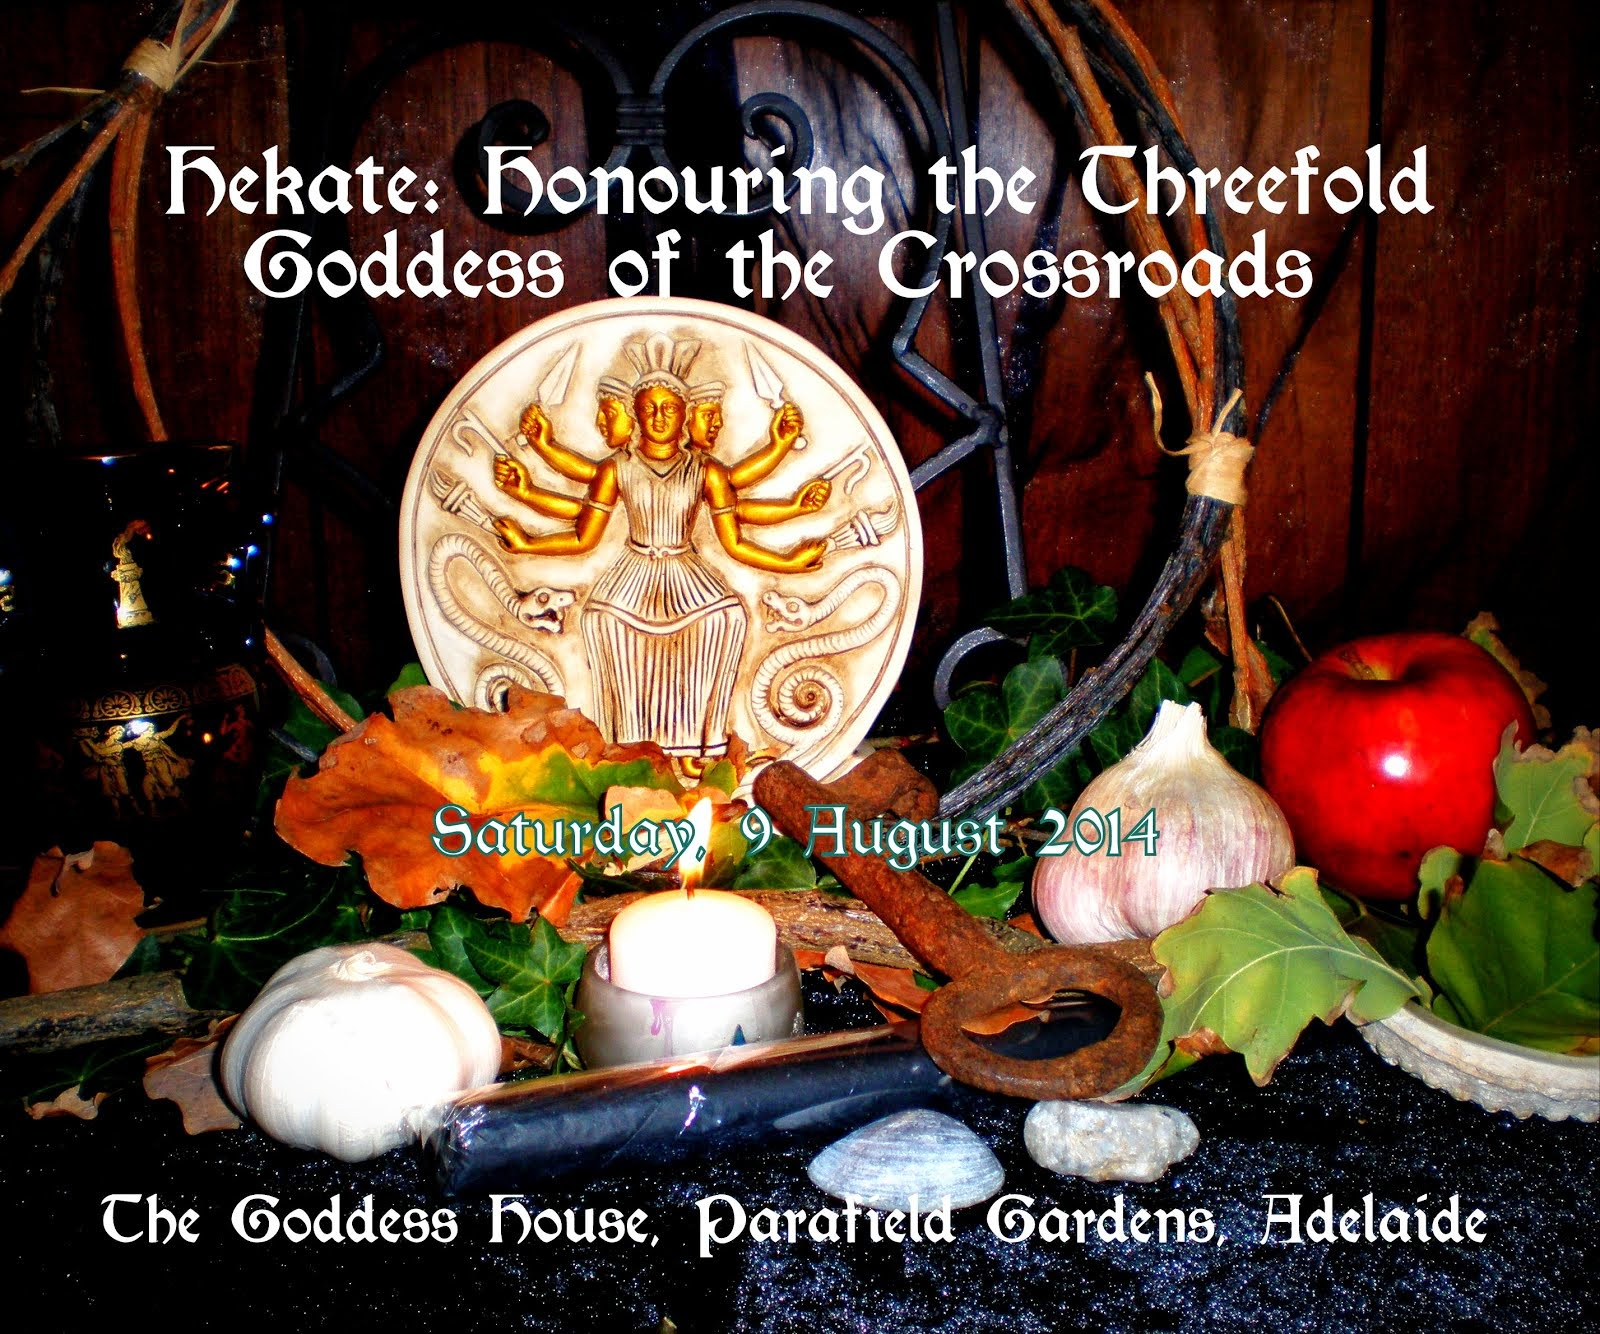 Hekate: Threefold Goddess of the Crossroads (4 August 2014)